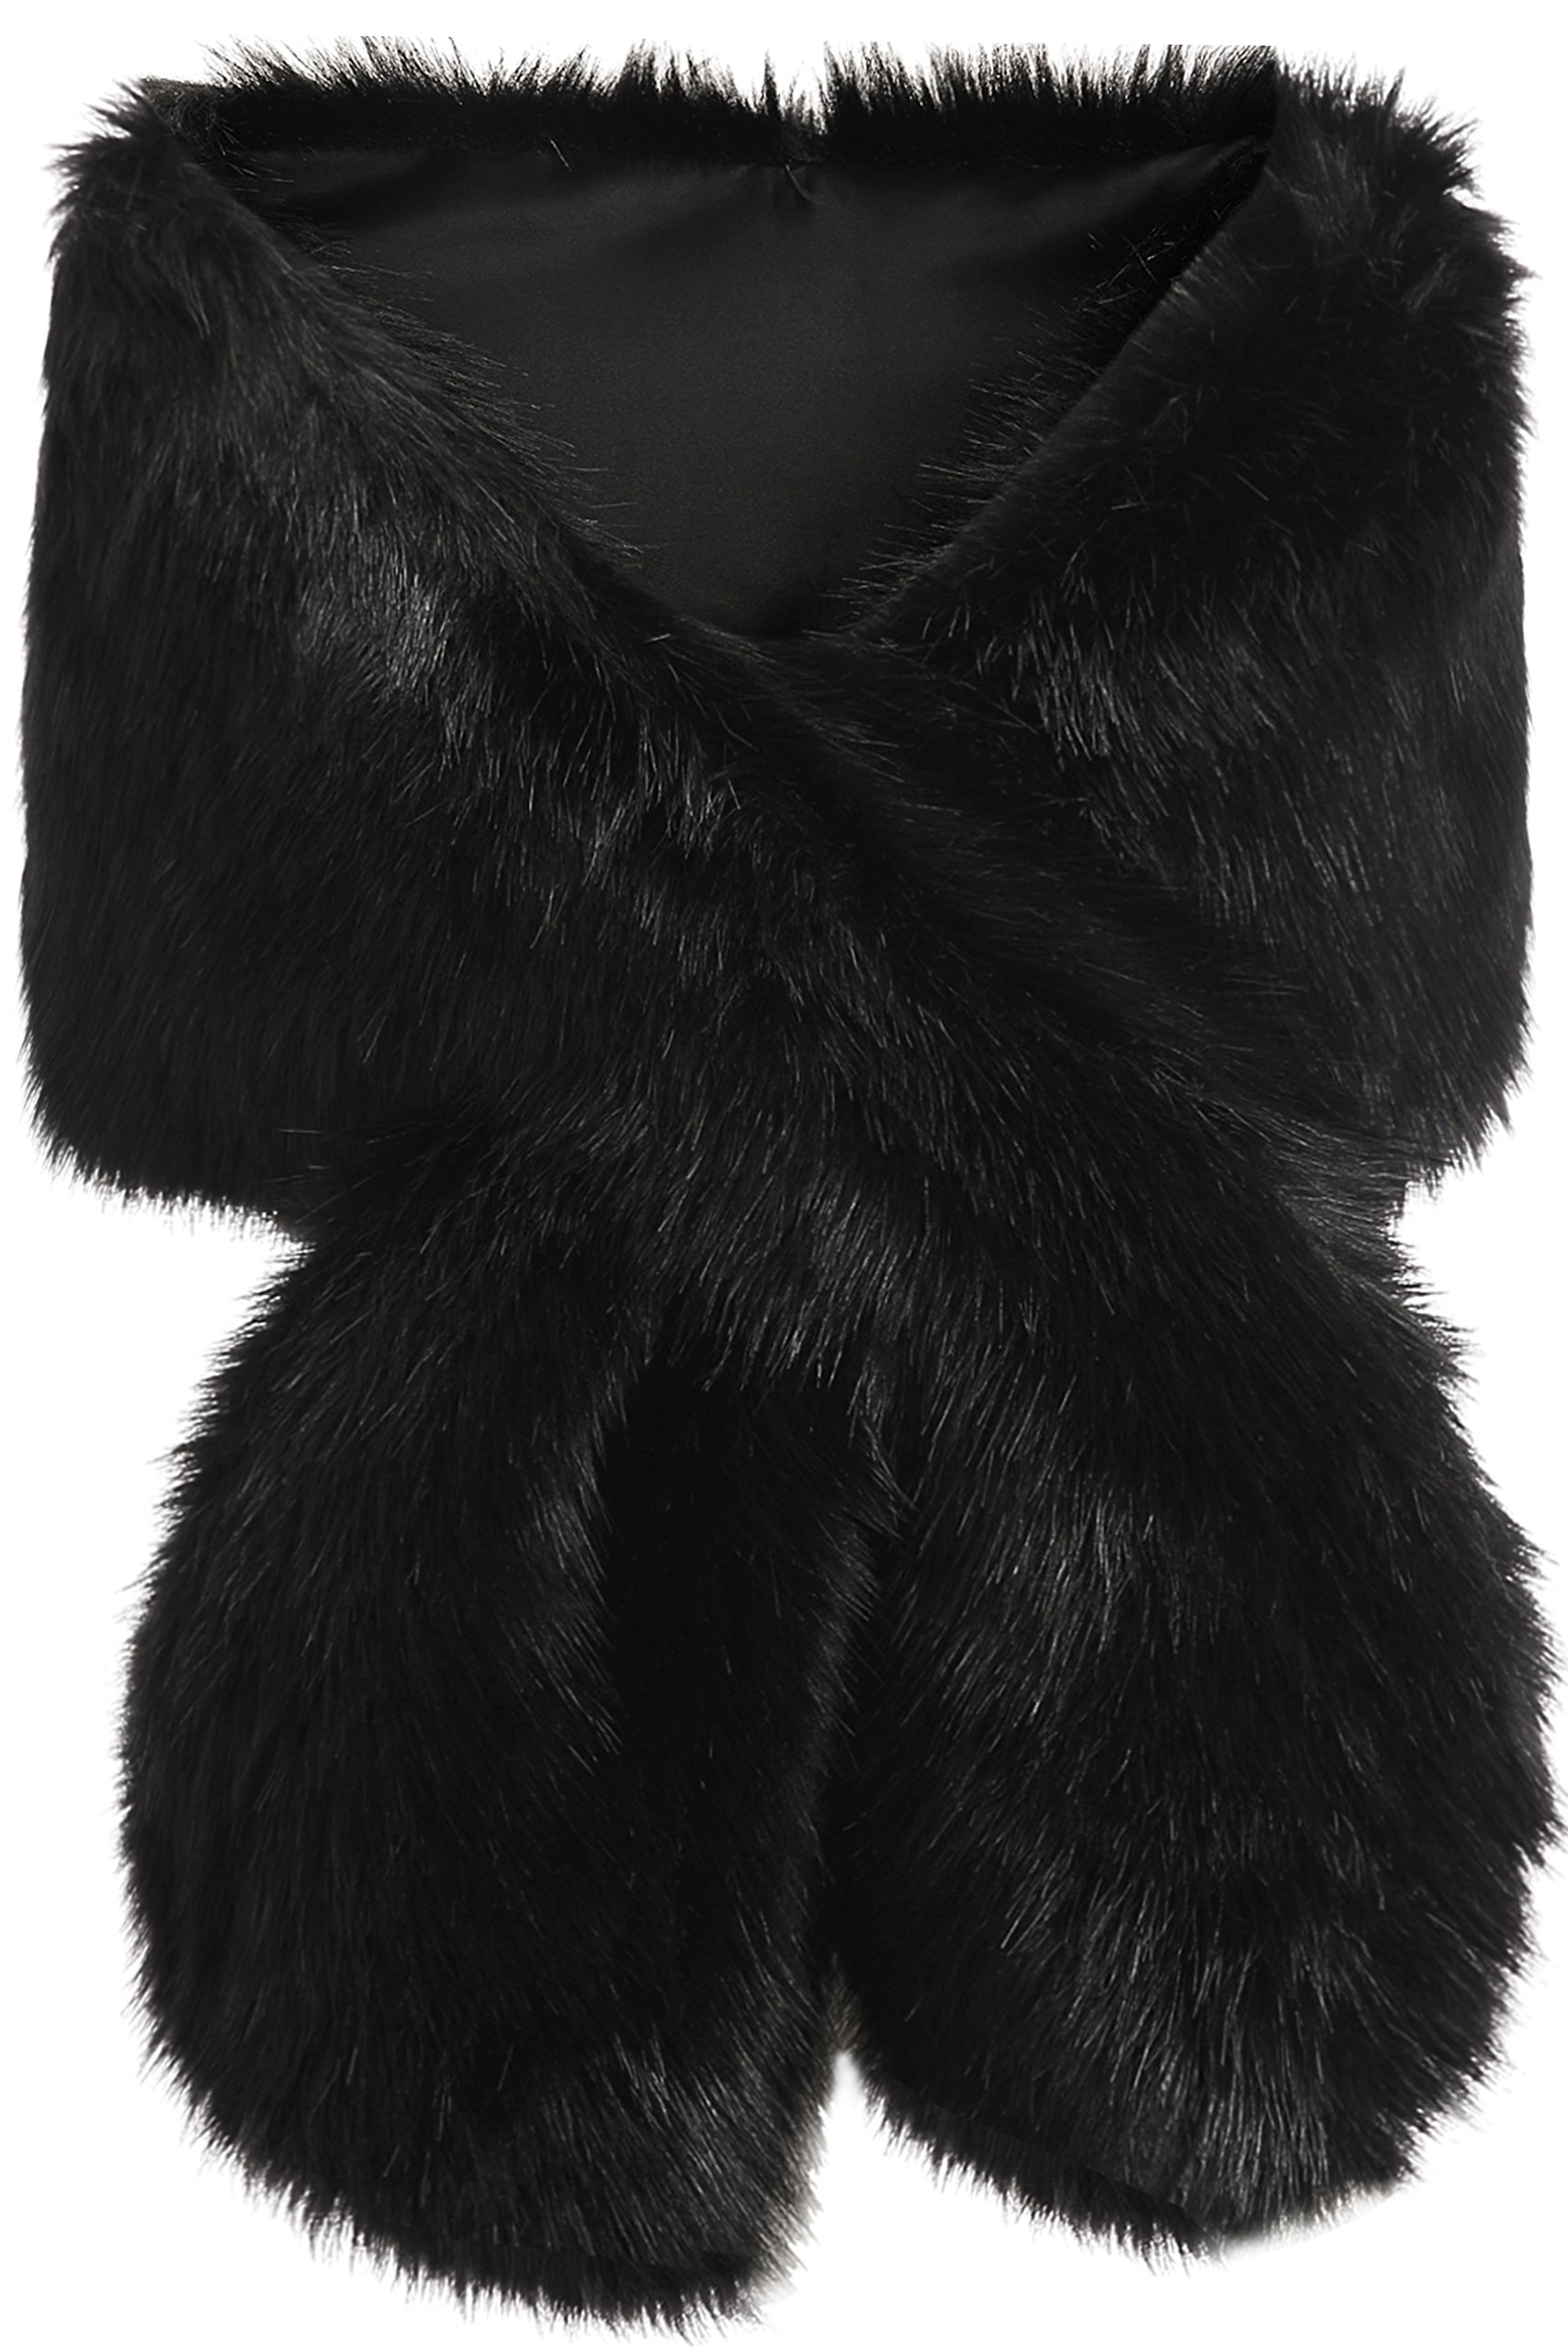 BABEYOND Womens Faux Fur Collar Shawl Faux Fur Scarf Wrap Evening Cape for Winter Coat (Black) by BABEYOND